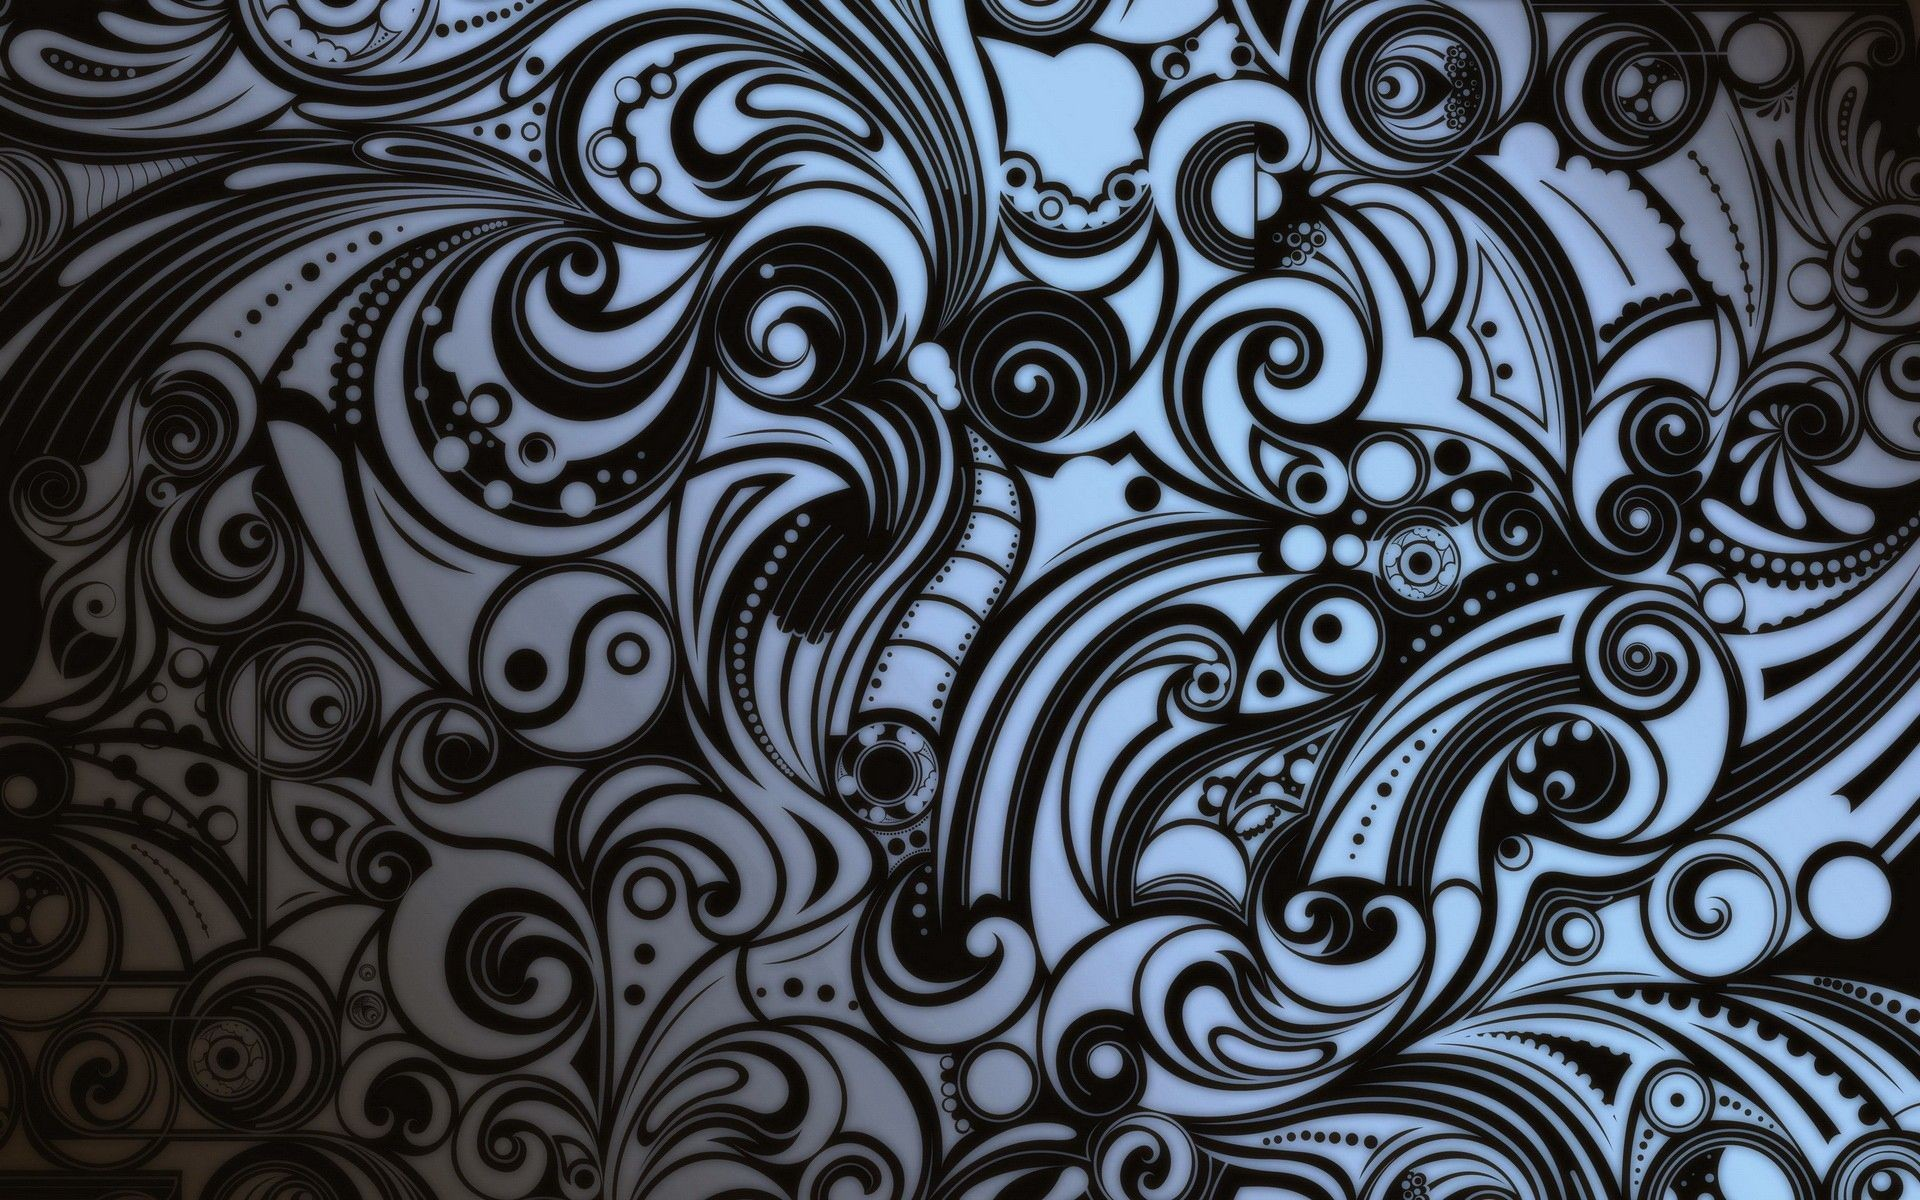 1920x1200 - Cool Tribal Backgrounds 37